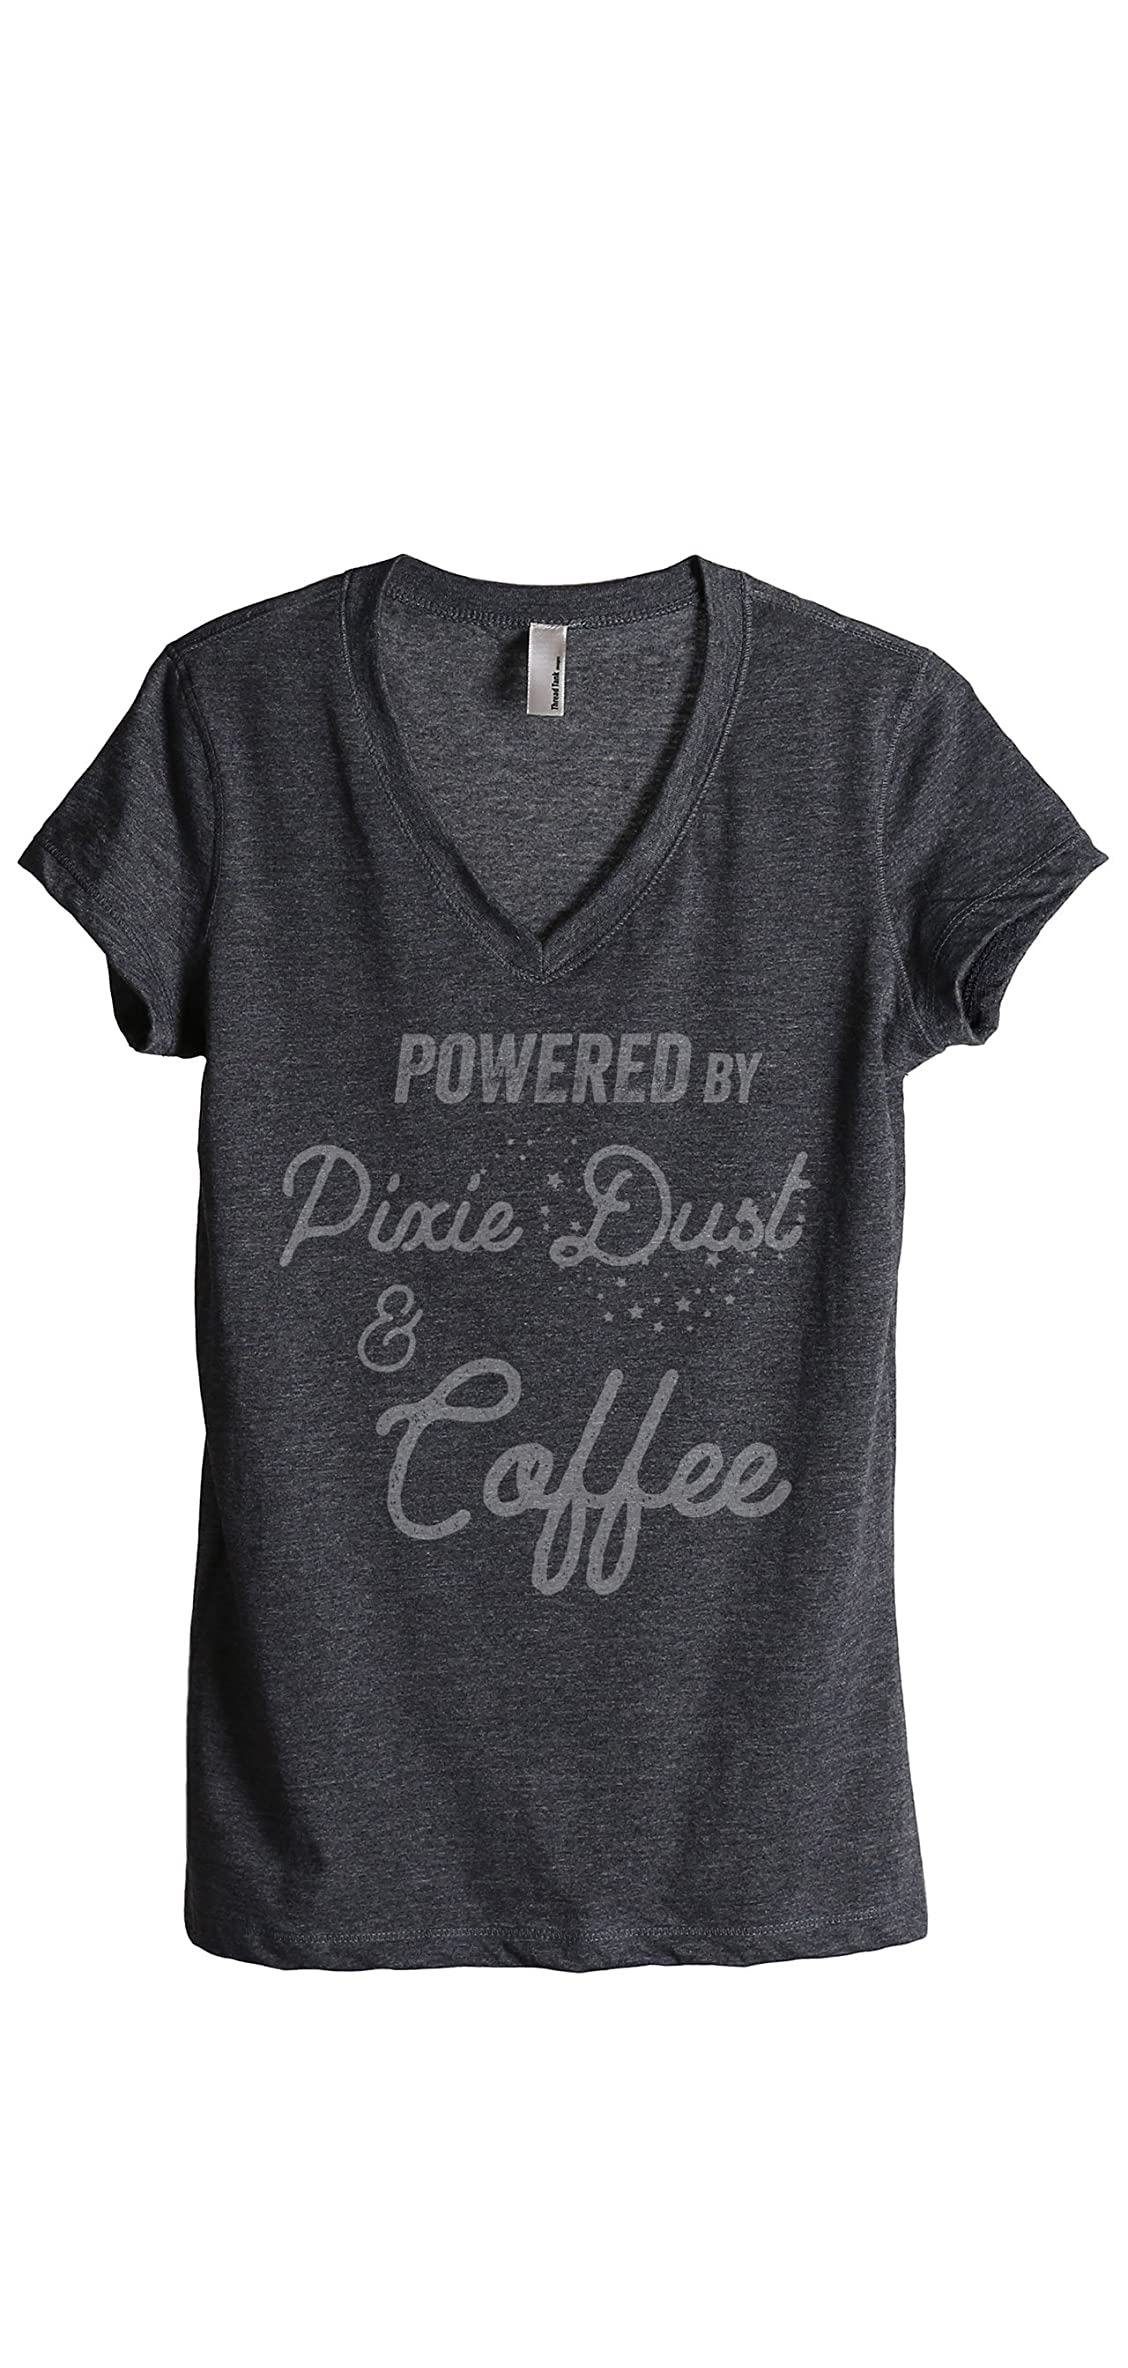 Powered By Pixie Dust And Coffee Women's Relaxed Tee